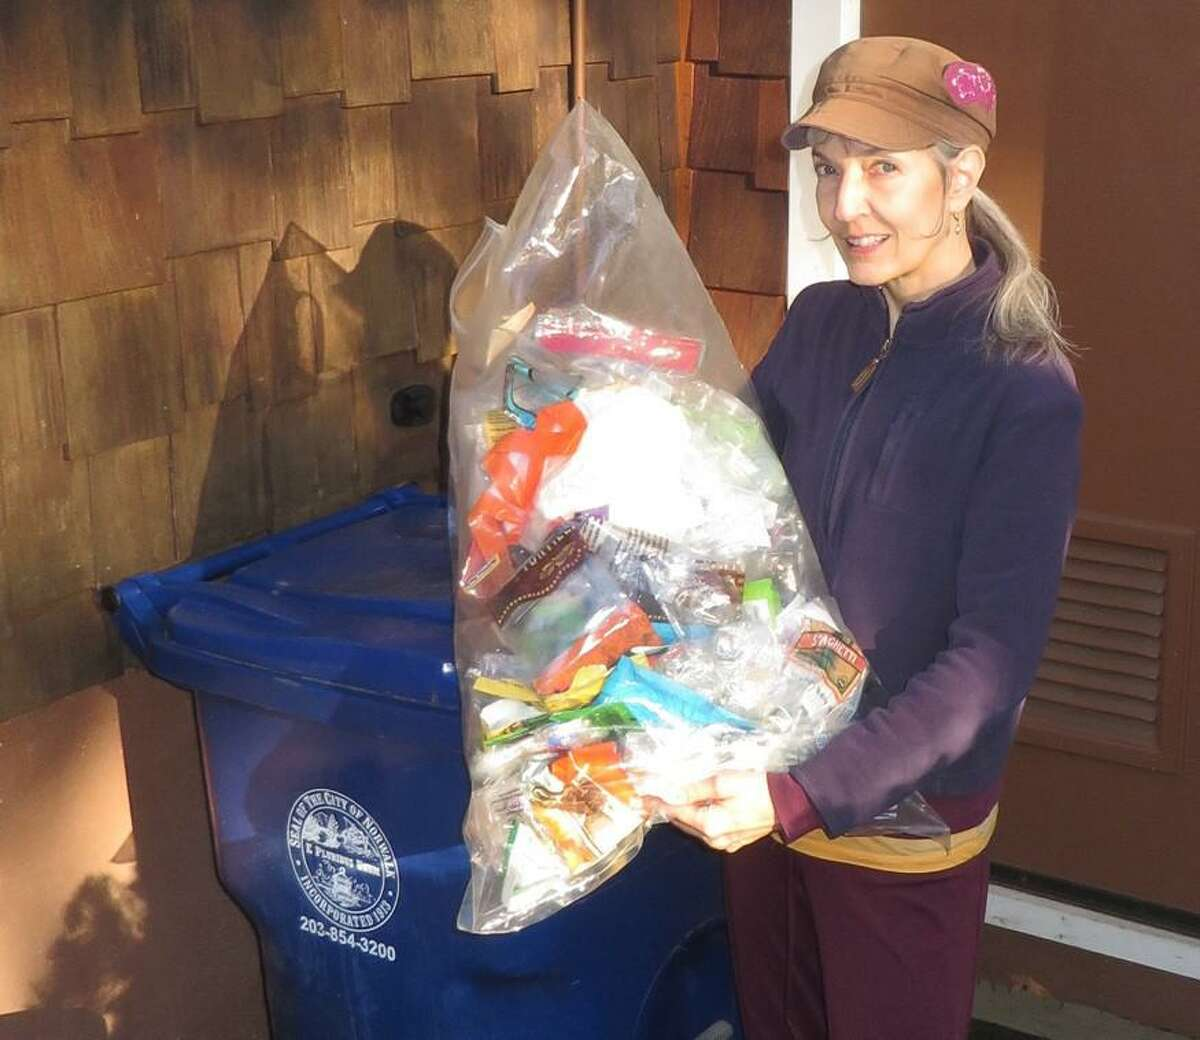 Audrey Cozzarin holds a bag containing one-month's household plastic food packaging which cannot be recycled.